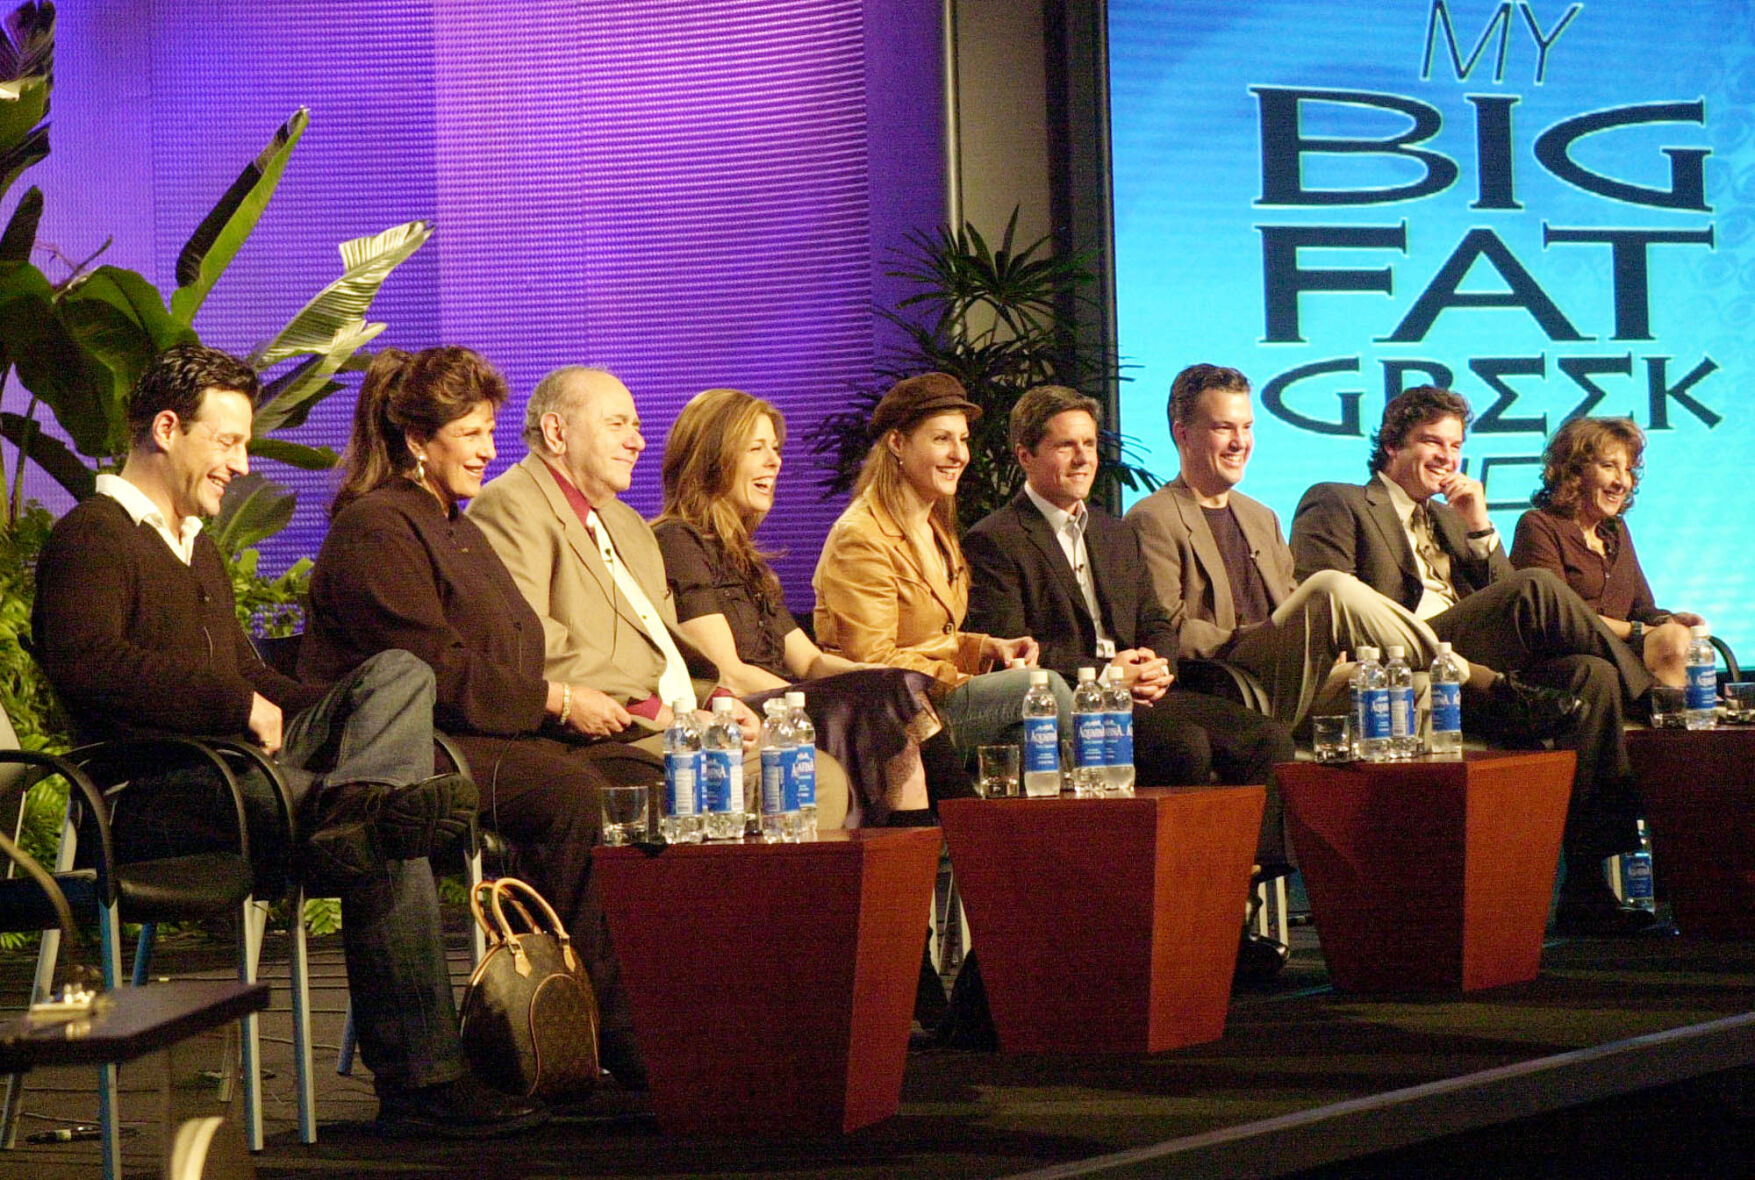 """<p>The cast and producers of the new CBS television show """"My Big Fat Greek Life"""" from left, Louis Mandylor, Lainie Kazan, Michael Constantine, Rita Wilson, Nia Vardalos, Brad Grey, Marsh McCall, Steven Eckholdt and Andrea Martin answer questions for reporters Monday, Jan. 13, 2003, in Los Angeles.</p>"""